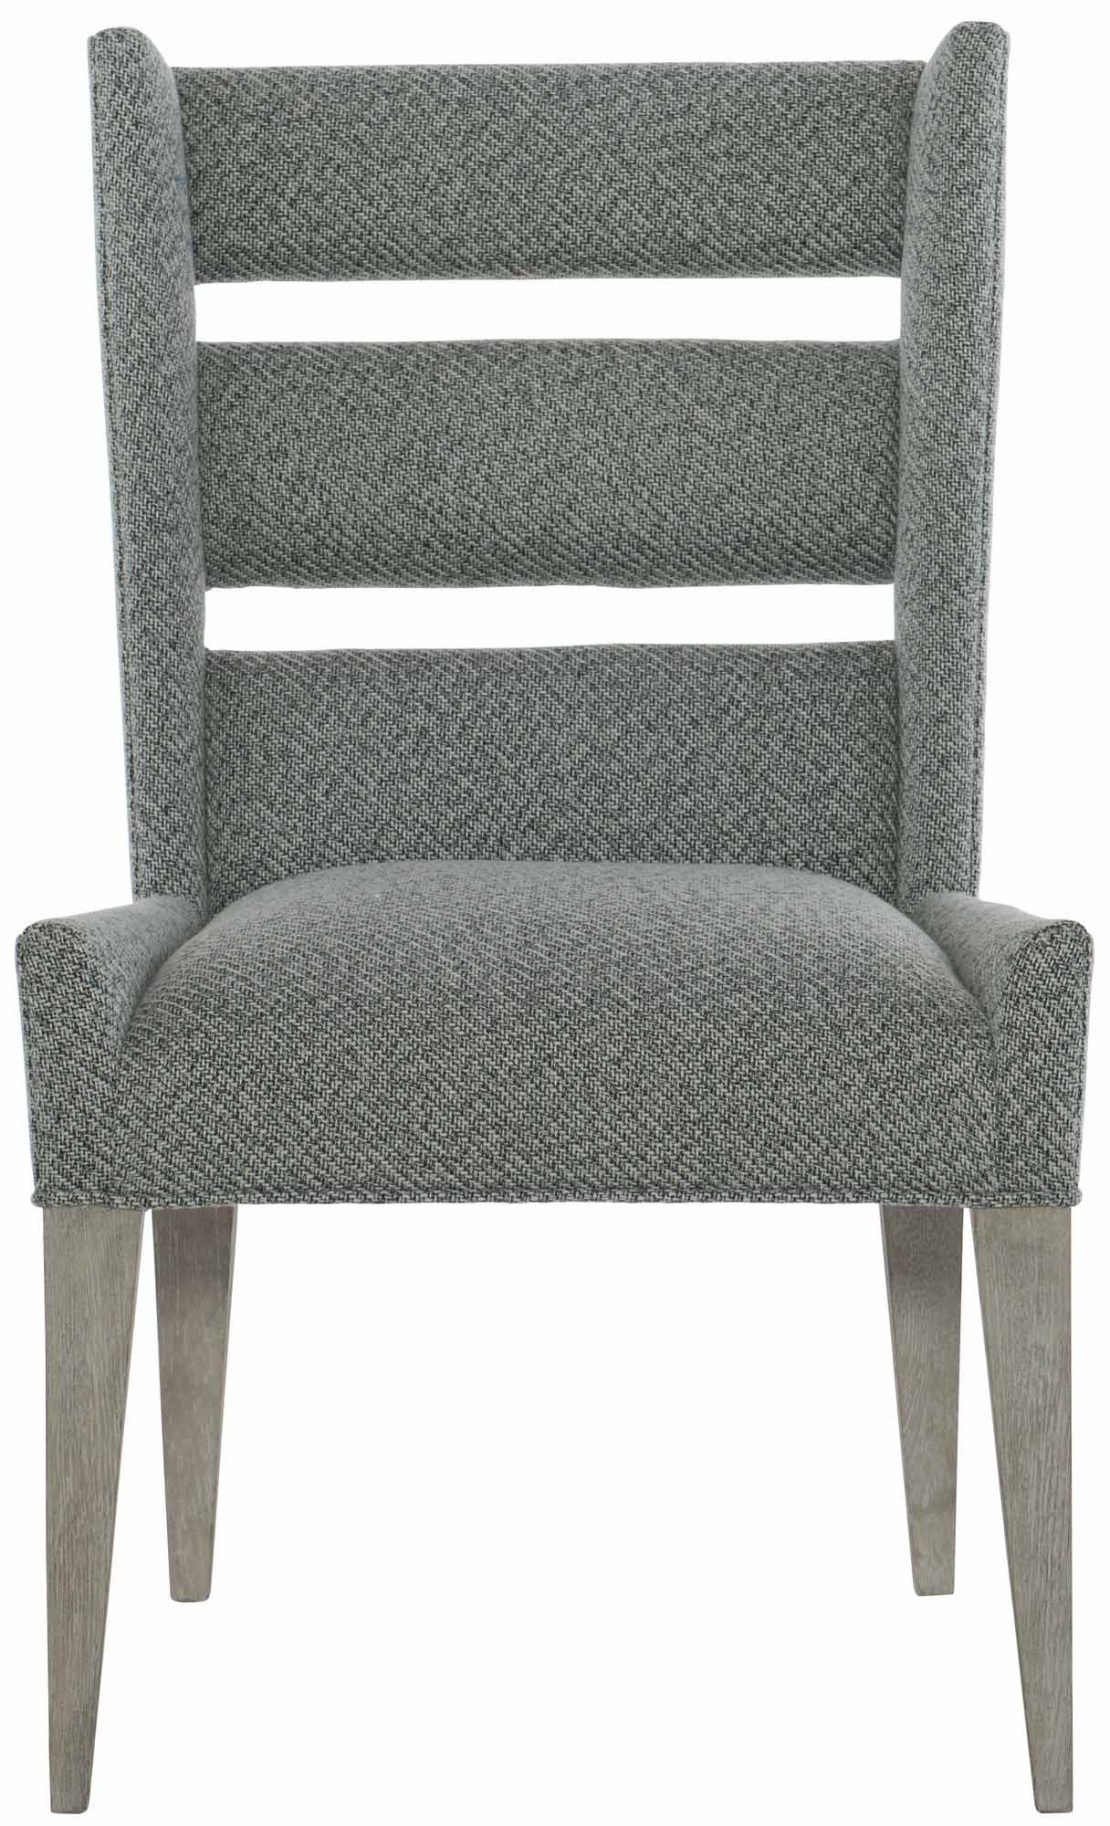 Dwell Home Furnishings Interior Design Dining Chairs Dwell Home Furnishings Coralville Ia Side Chairs Dining Dining Chairs Chair